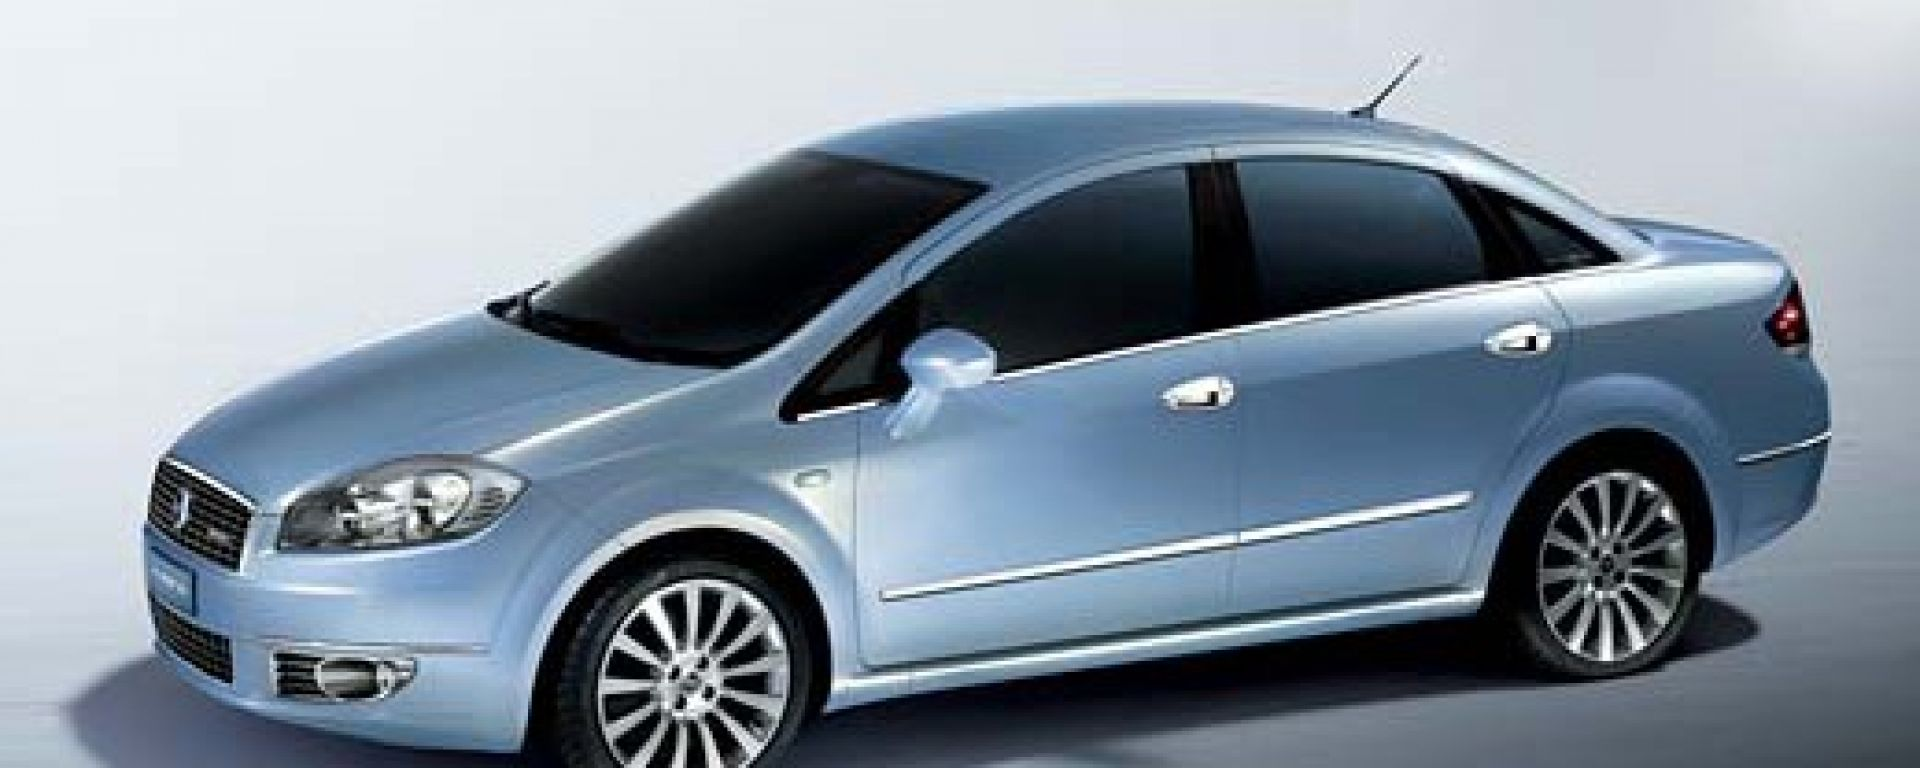 Fiat Linea: anticipa la Stilo?